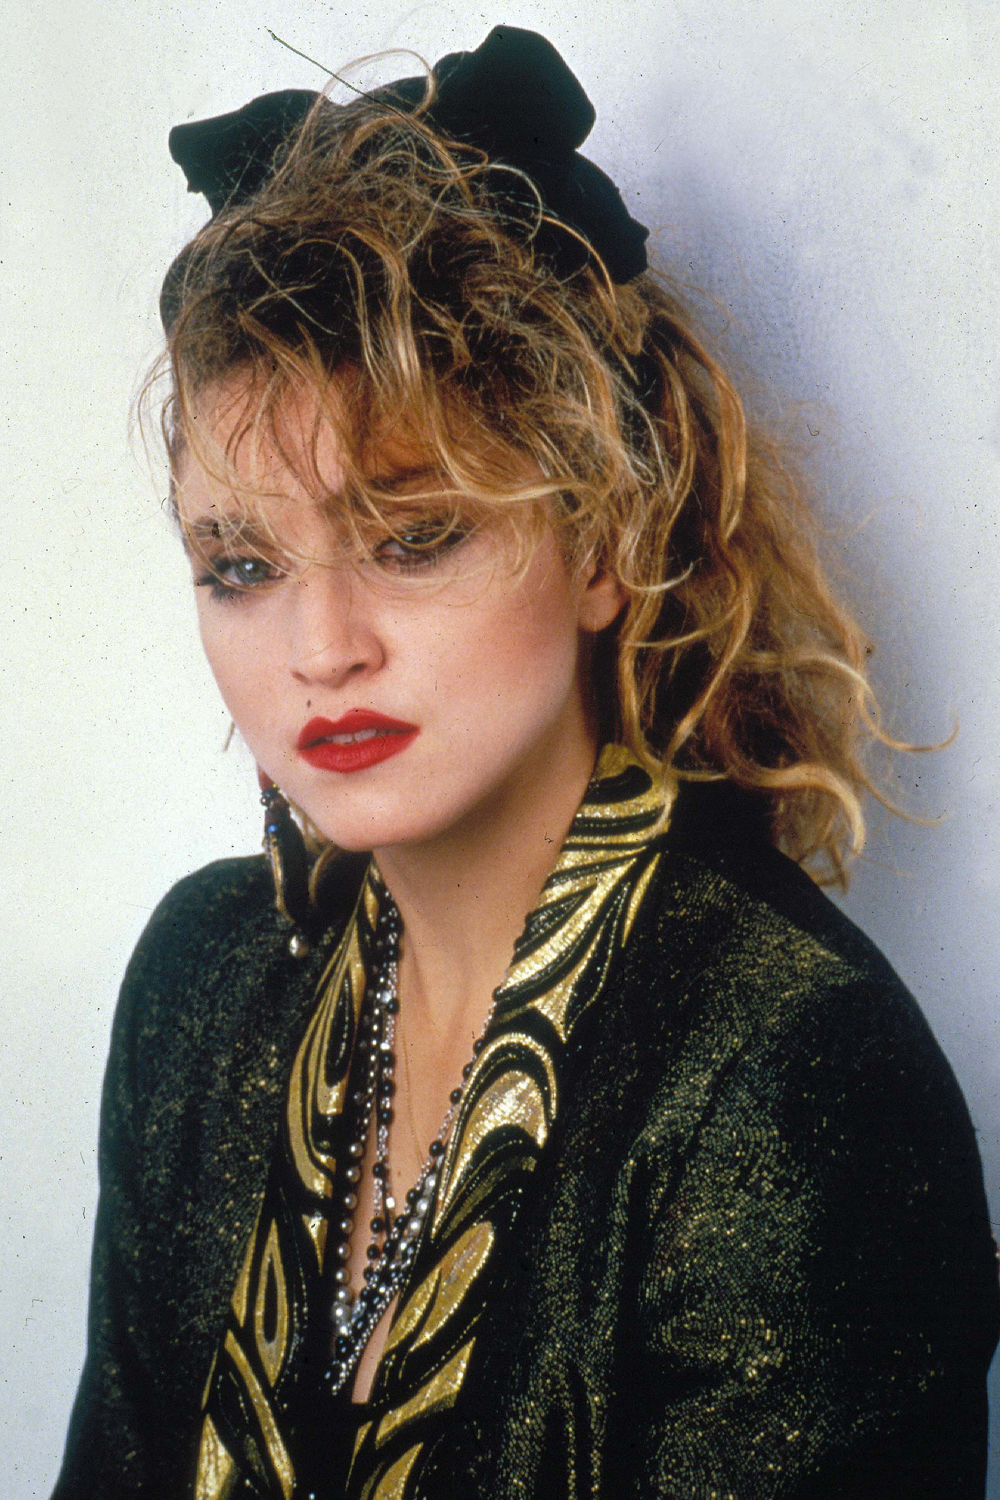 Madonna eighties 1980s fashion